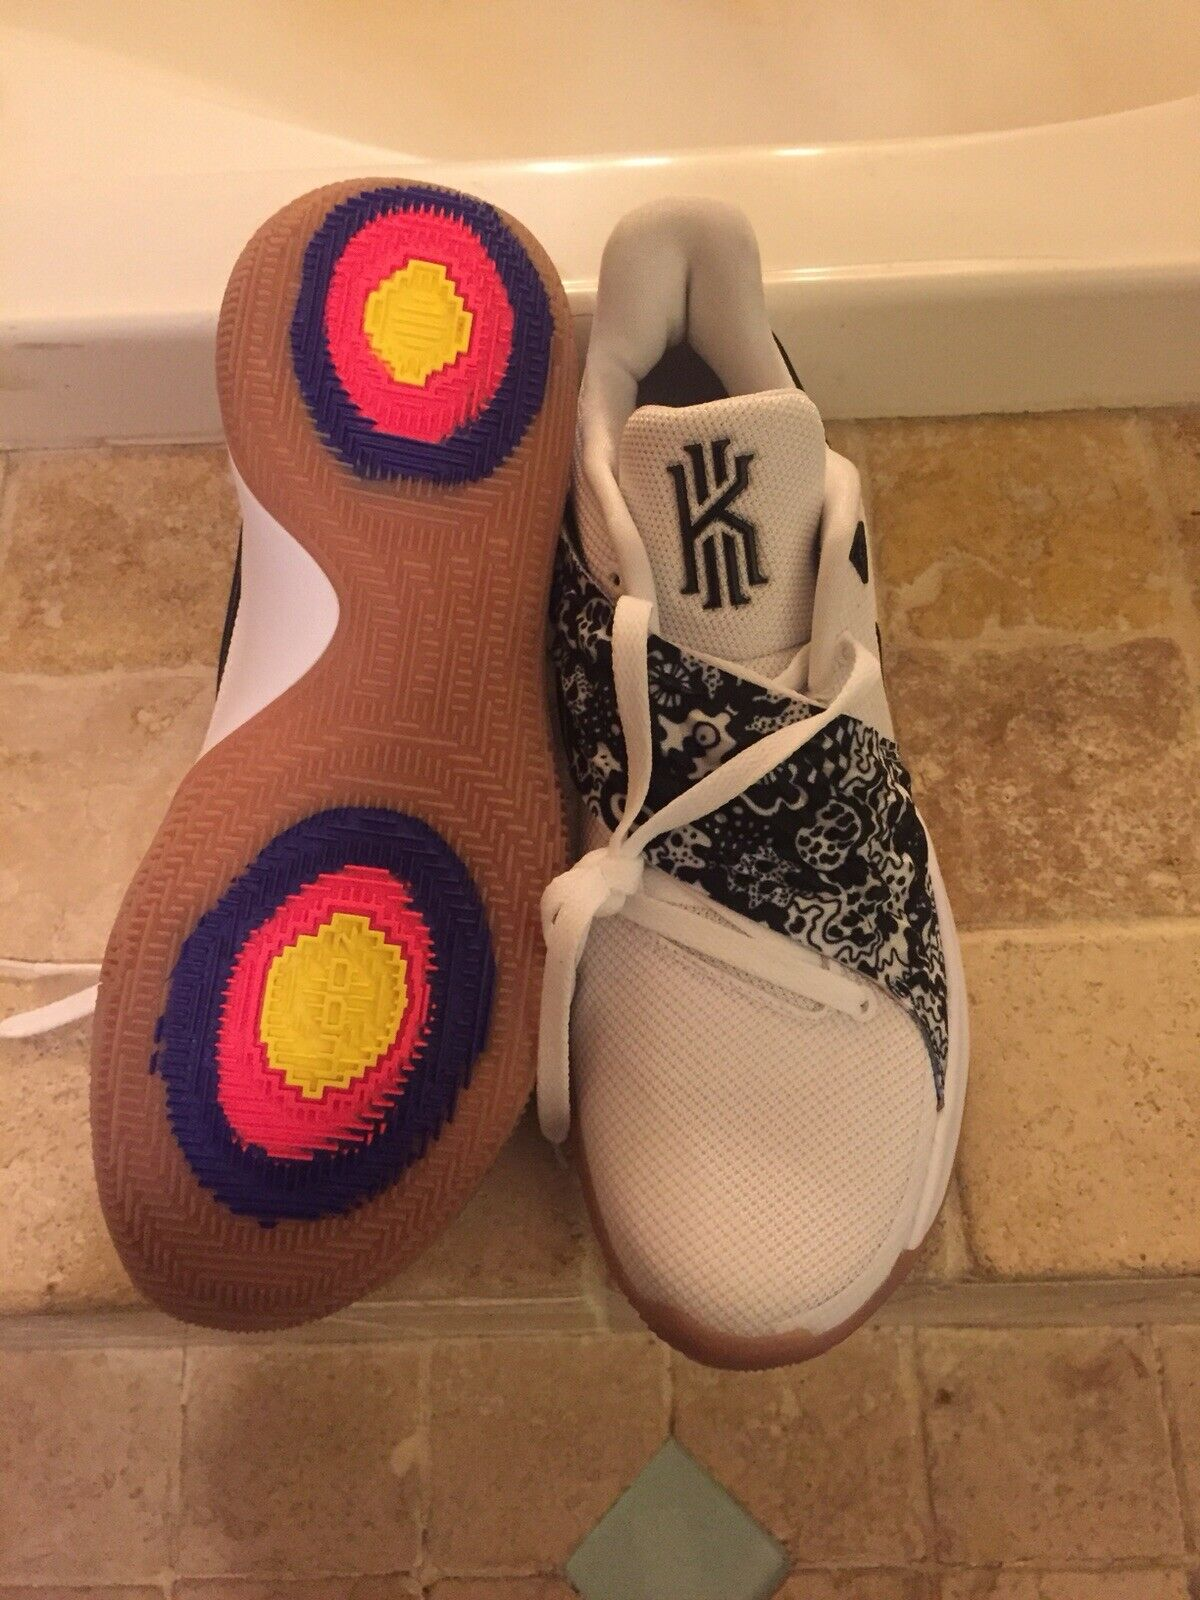 Nike Kyrie Irving 4 IV Low Basketball shoes White Black Gum AO8979-100 Size 11